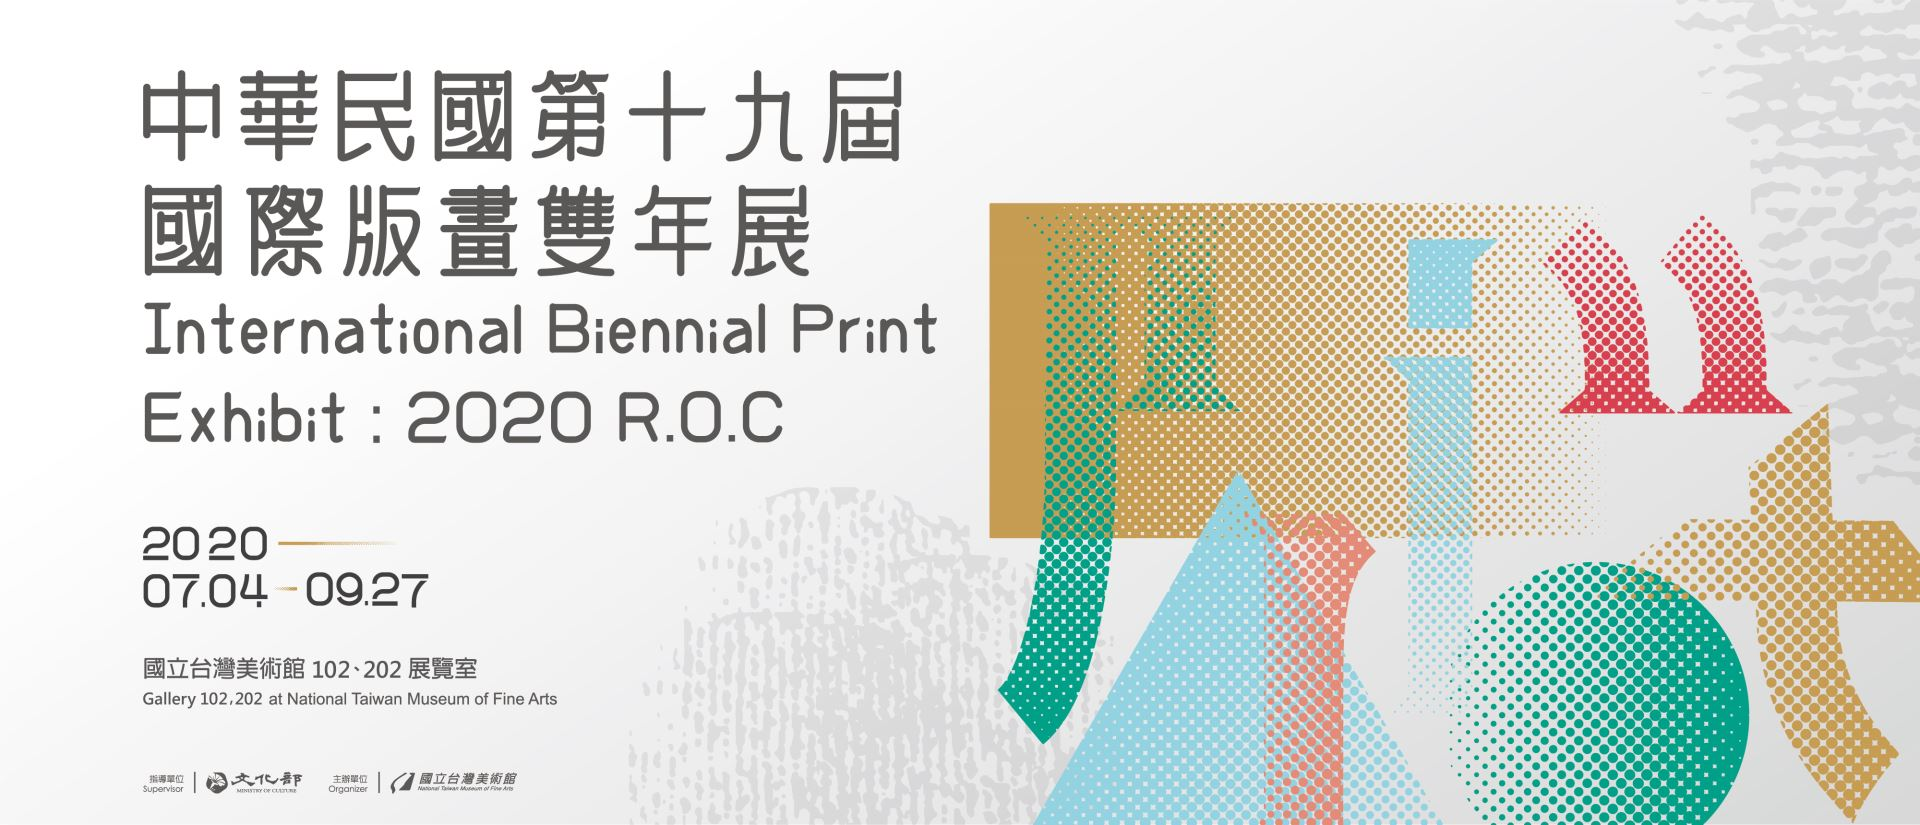 International Biennial Print Exhibit: 2020 R.O.C.opennewwindow